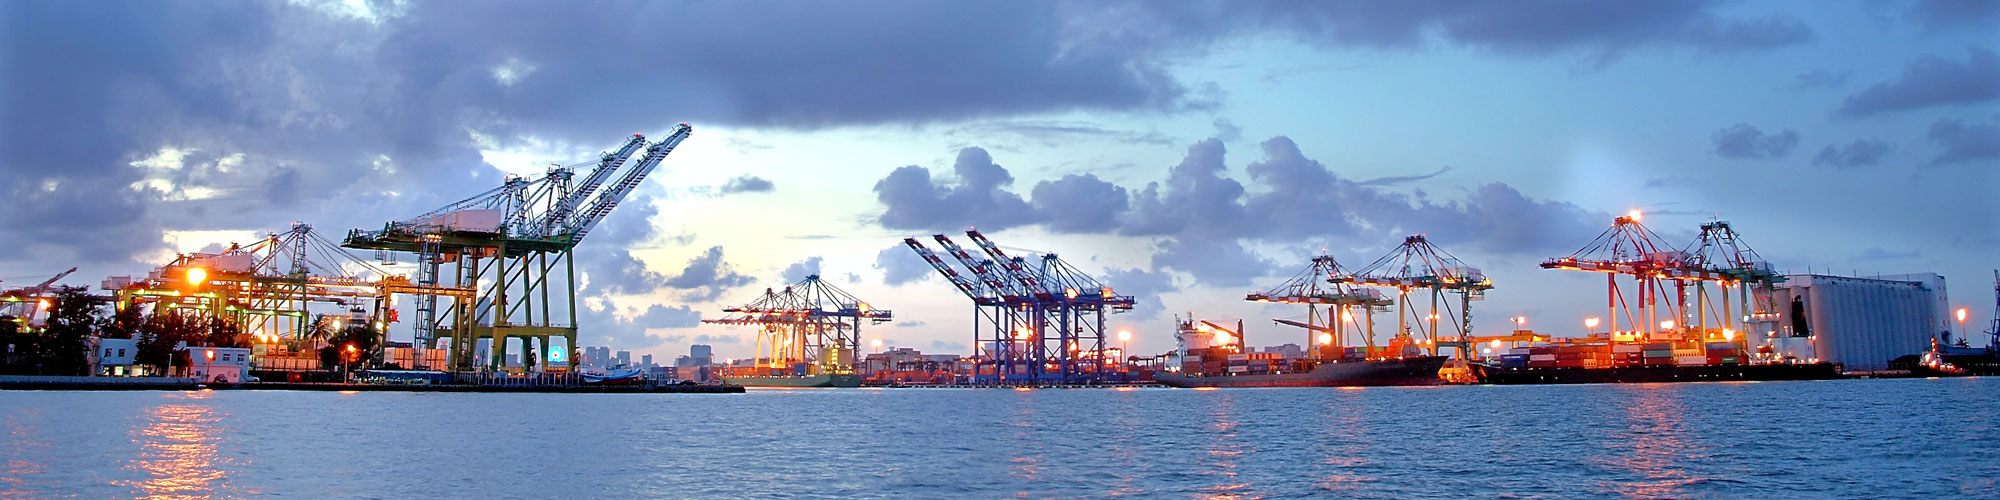 Beautiful view of the container port of Kaohsiung at dusk